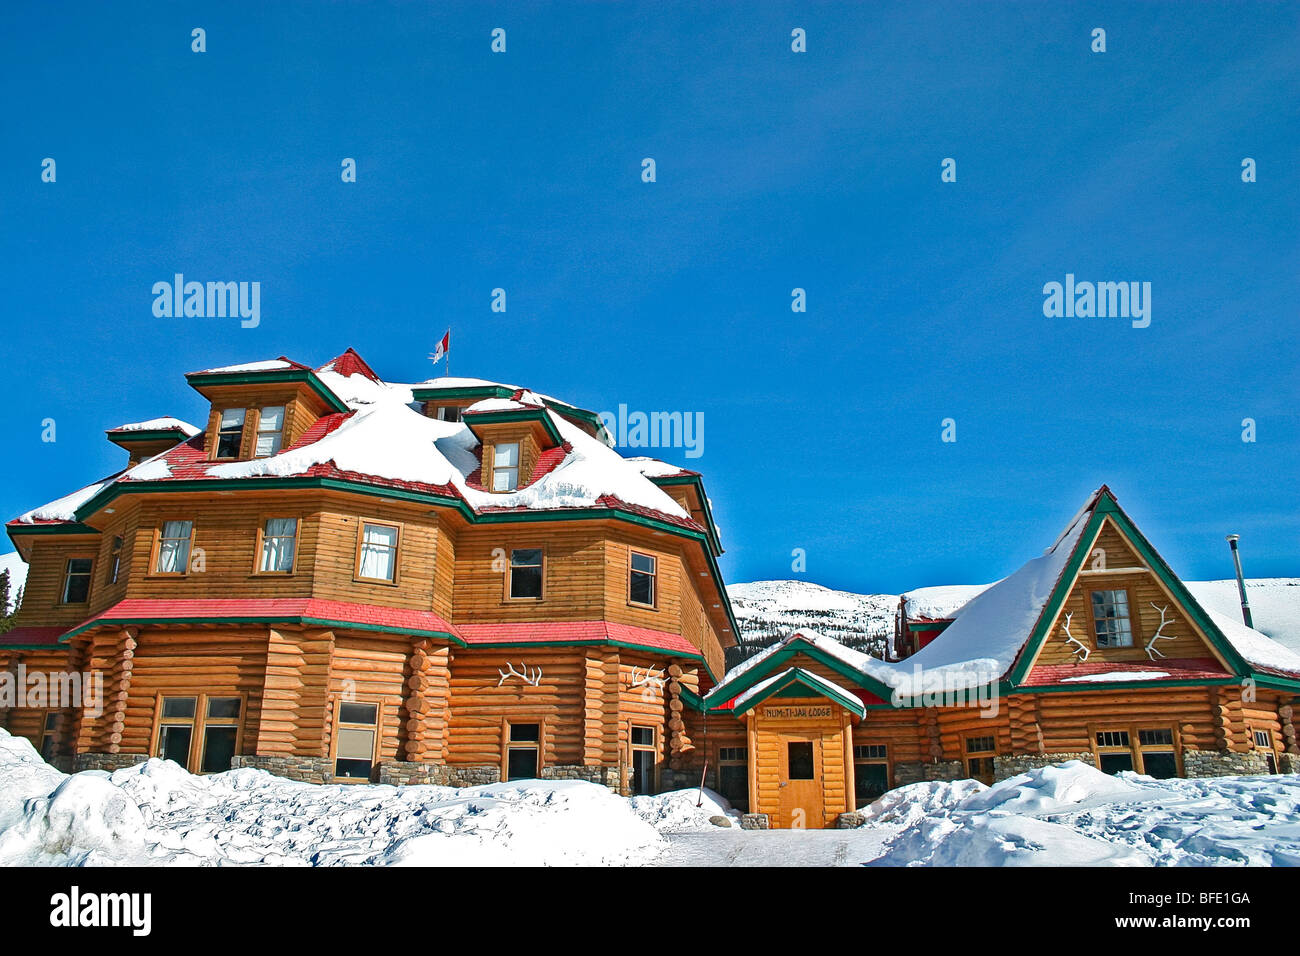 Num Ti Jah Lodge in winter along Icefields Parkway, Alberta, Canada. - Stock Image